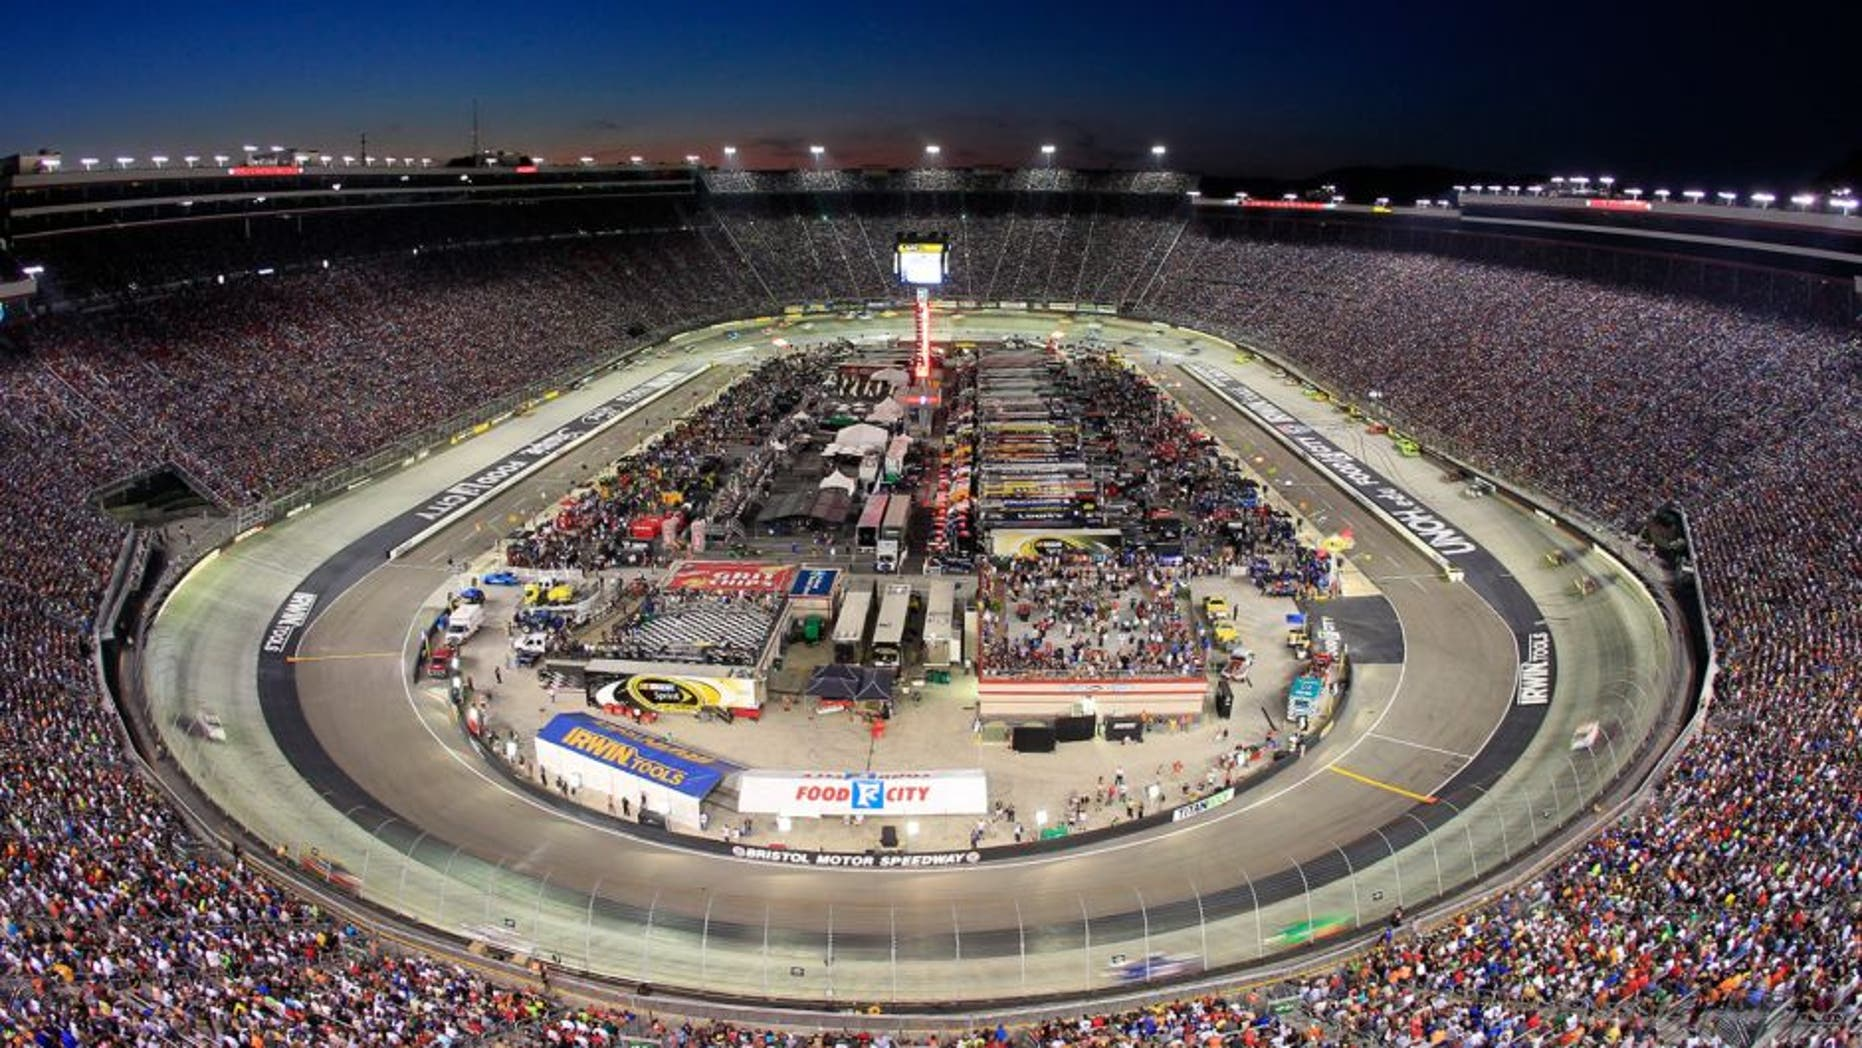 BRISTOL, TN - AUGUST 24: A general view during the NASCAR Sprint Cup Series 53rd Annual IRWIN Tools Night Race at Bristol Motor Speedway on August 24, 2013 in Bristol, Tennessee. (Photo by Geoff Burke/NASCAR via Getty Images)